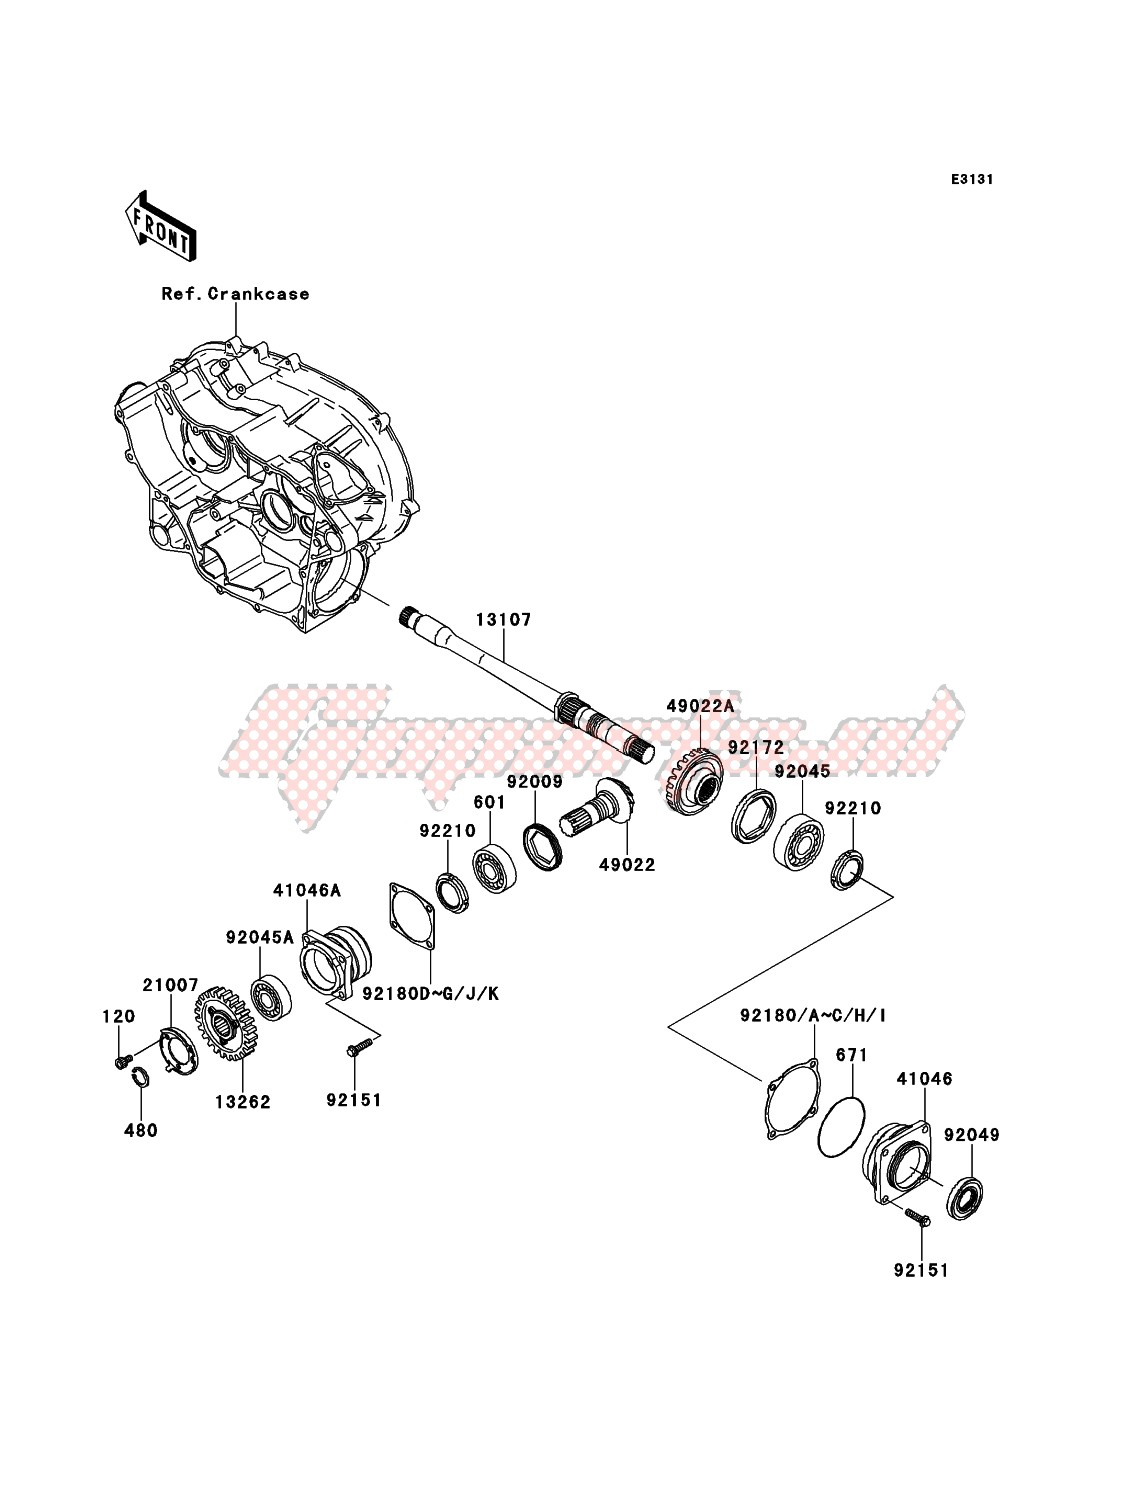 Front Bevel Gear image